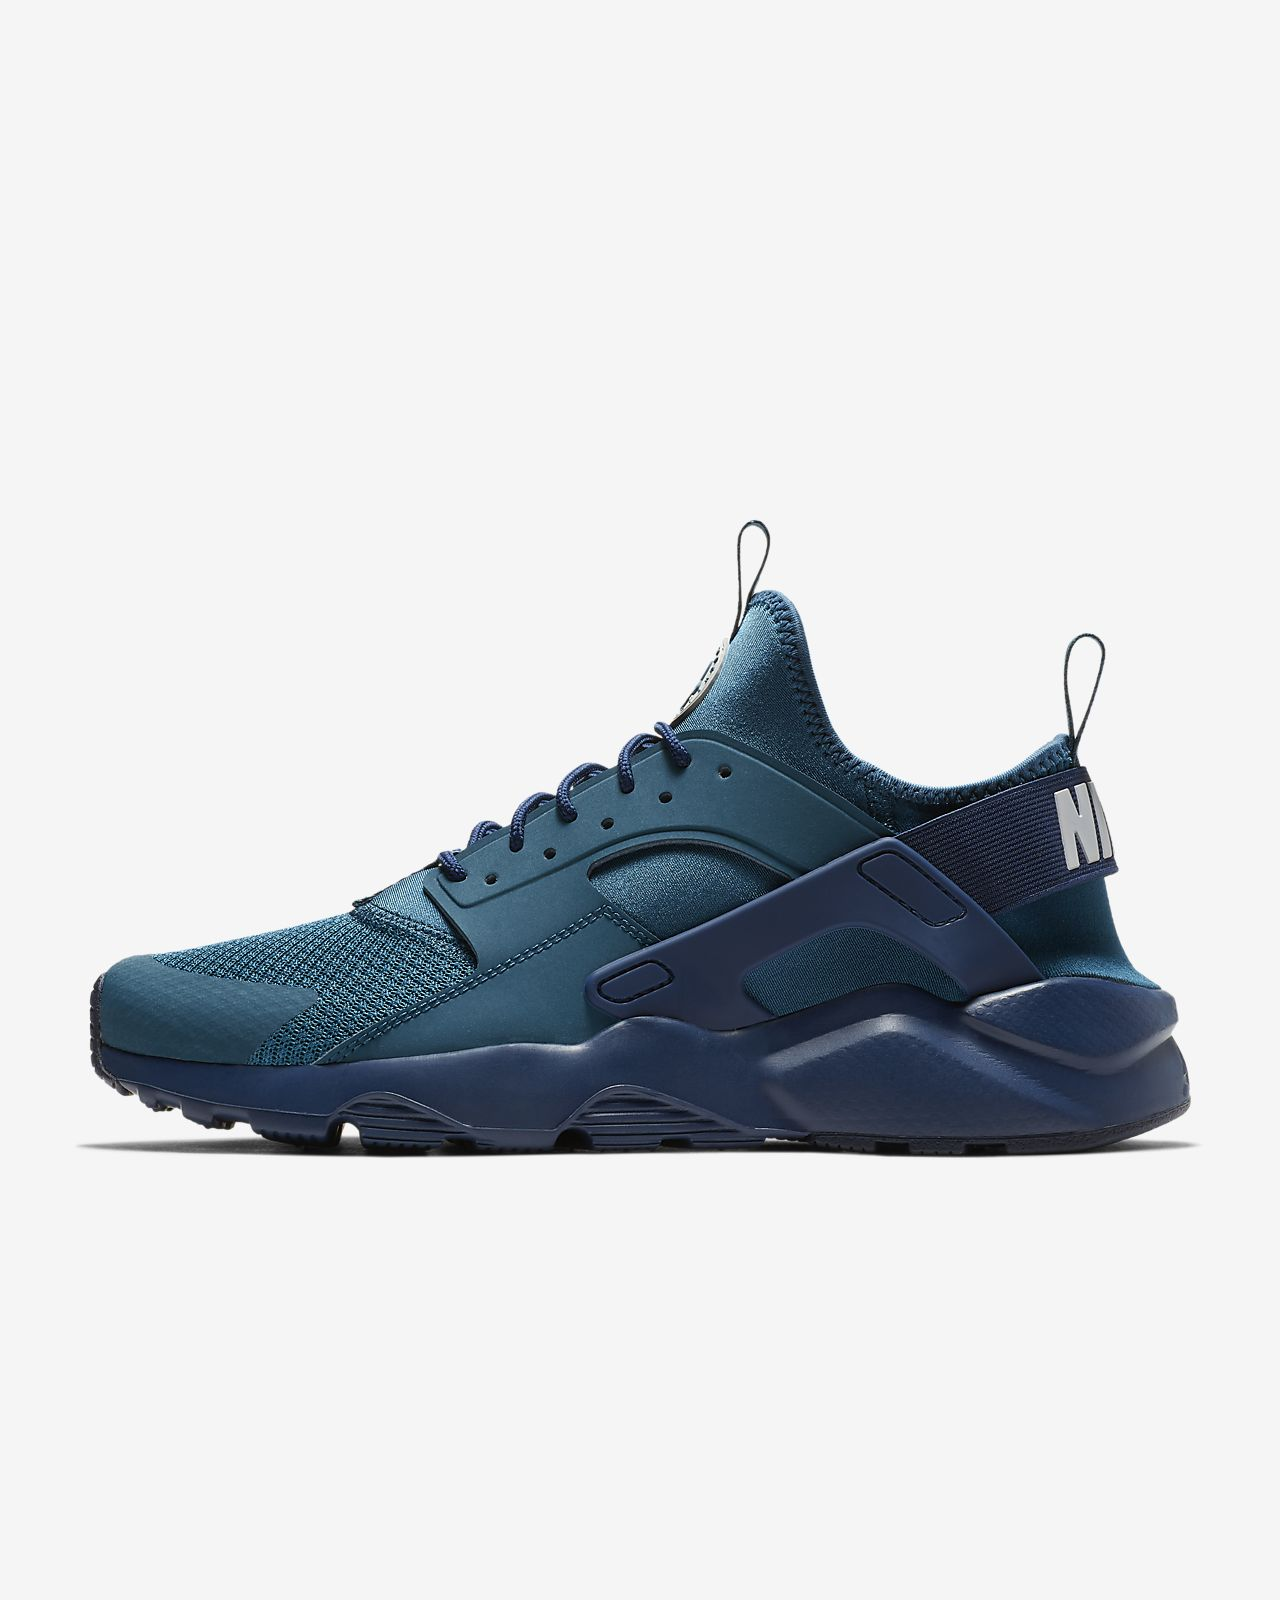 Air Chaussure Ultra Huarache Nike HommeBe Pour f7gb6vYy